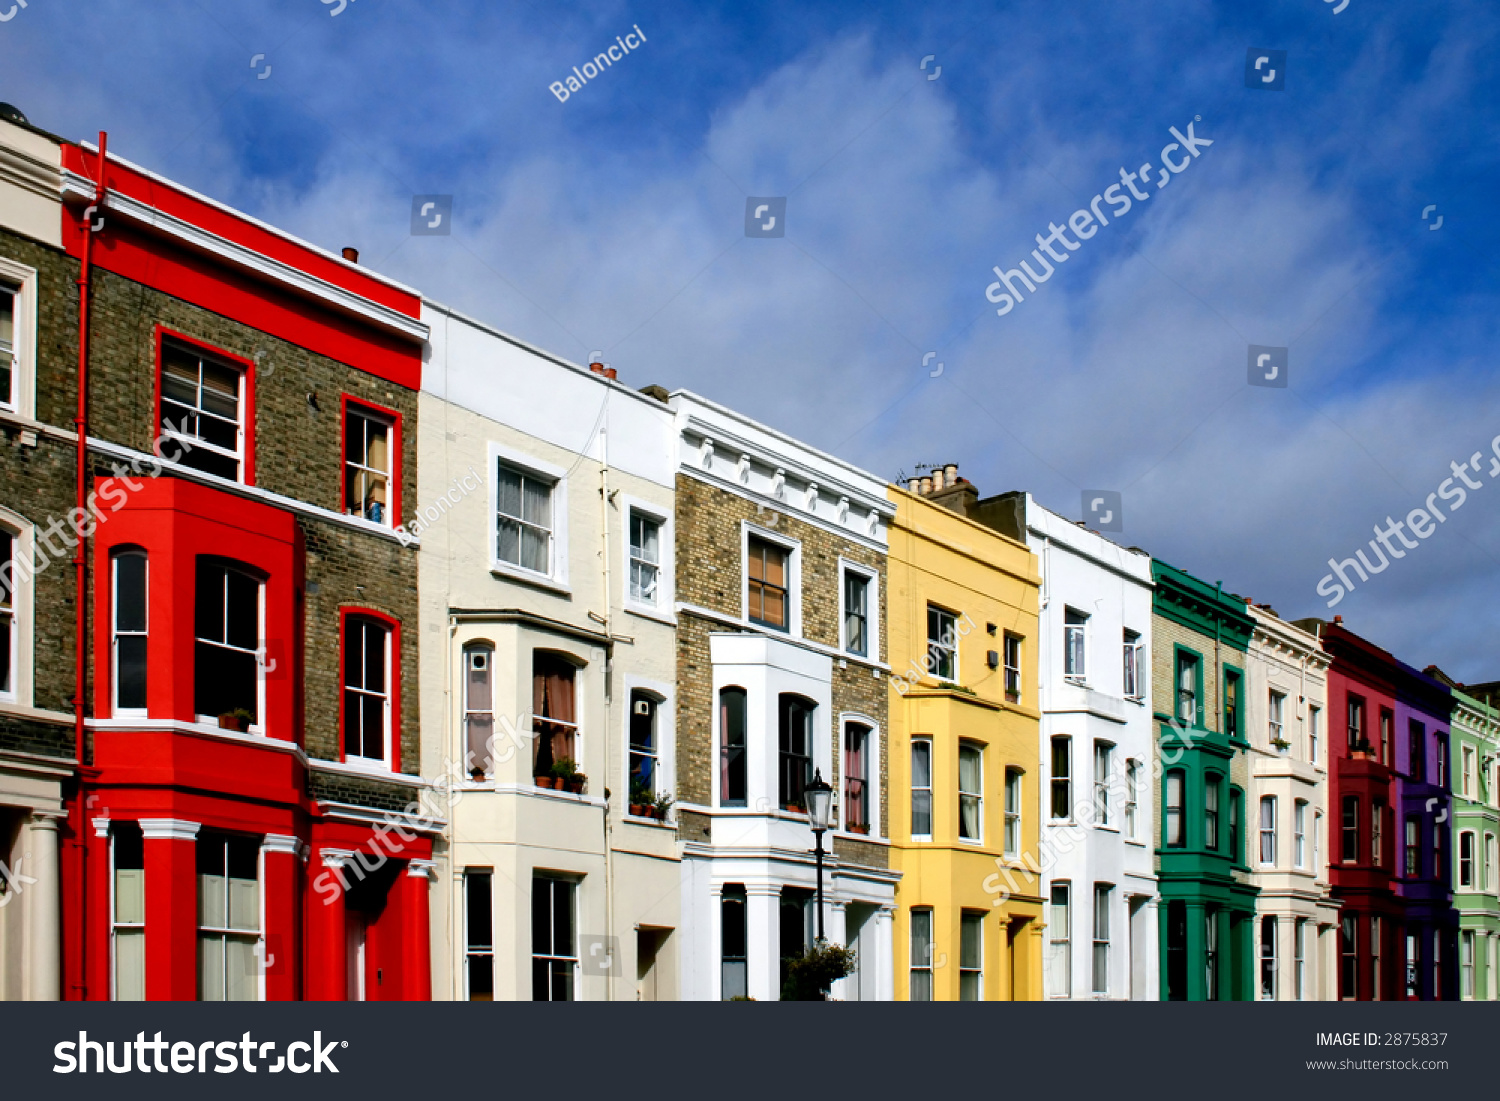 Color Houses famous london street color houses stock photo 2875837 - shutterstock